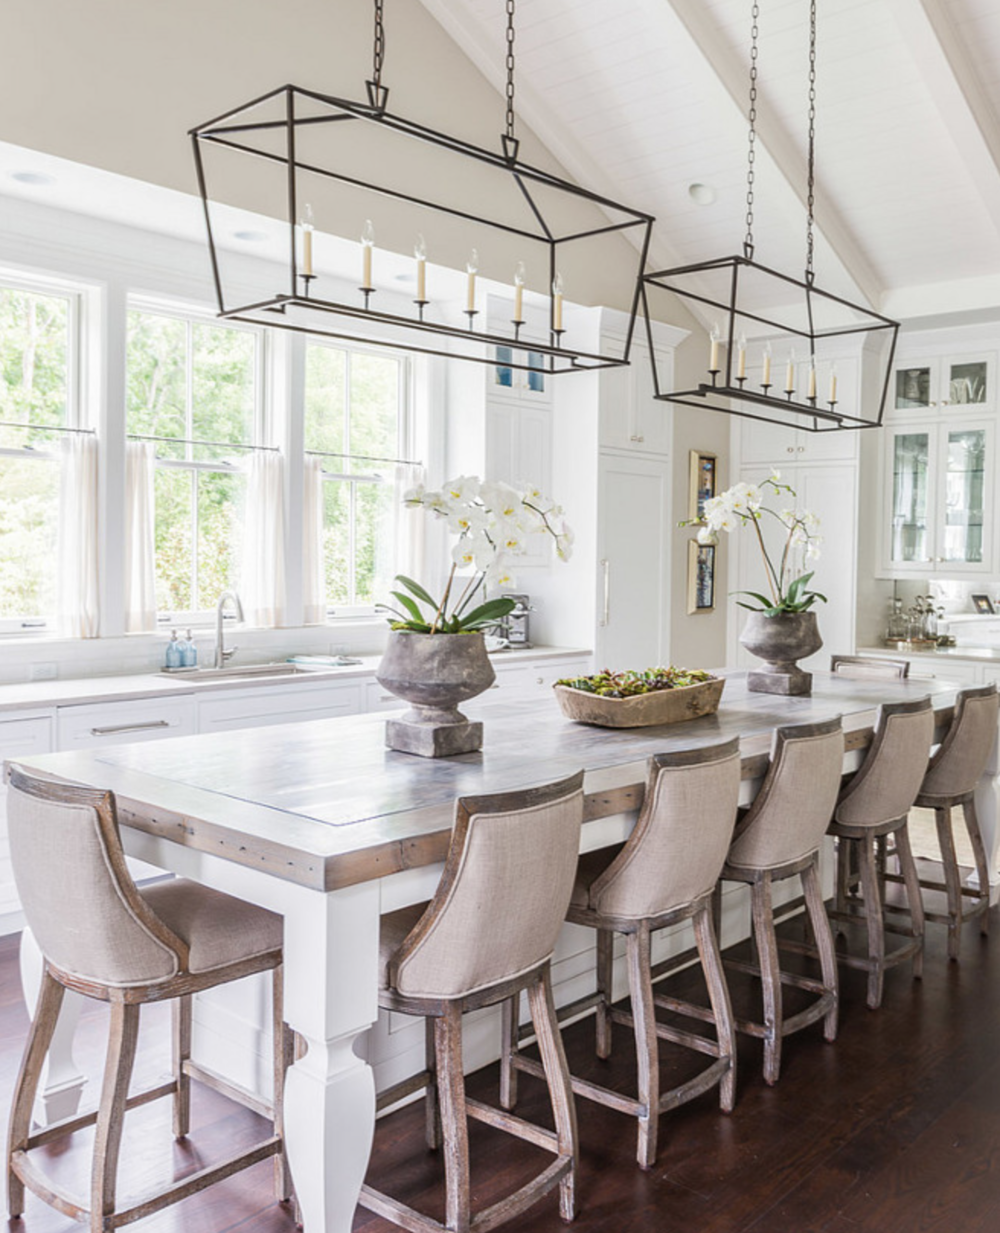 15 Most Beautiful Kitchens on Pinterest-Castle Homes